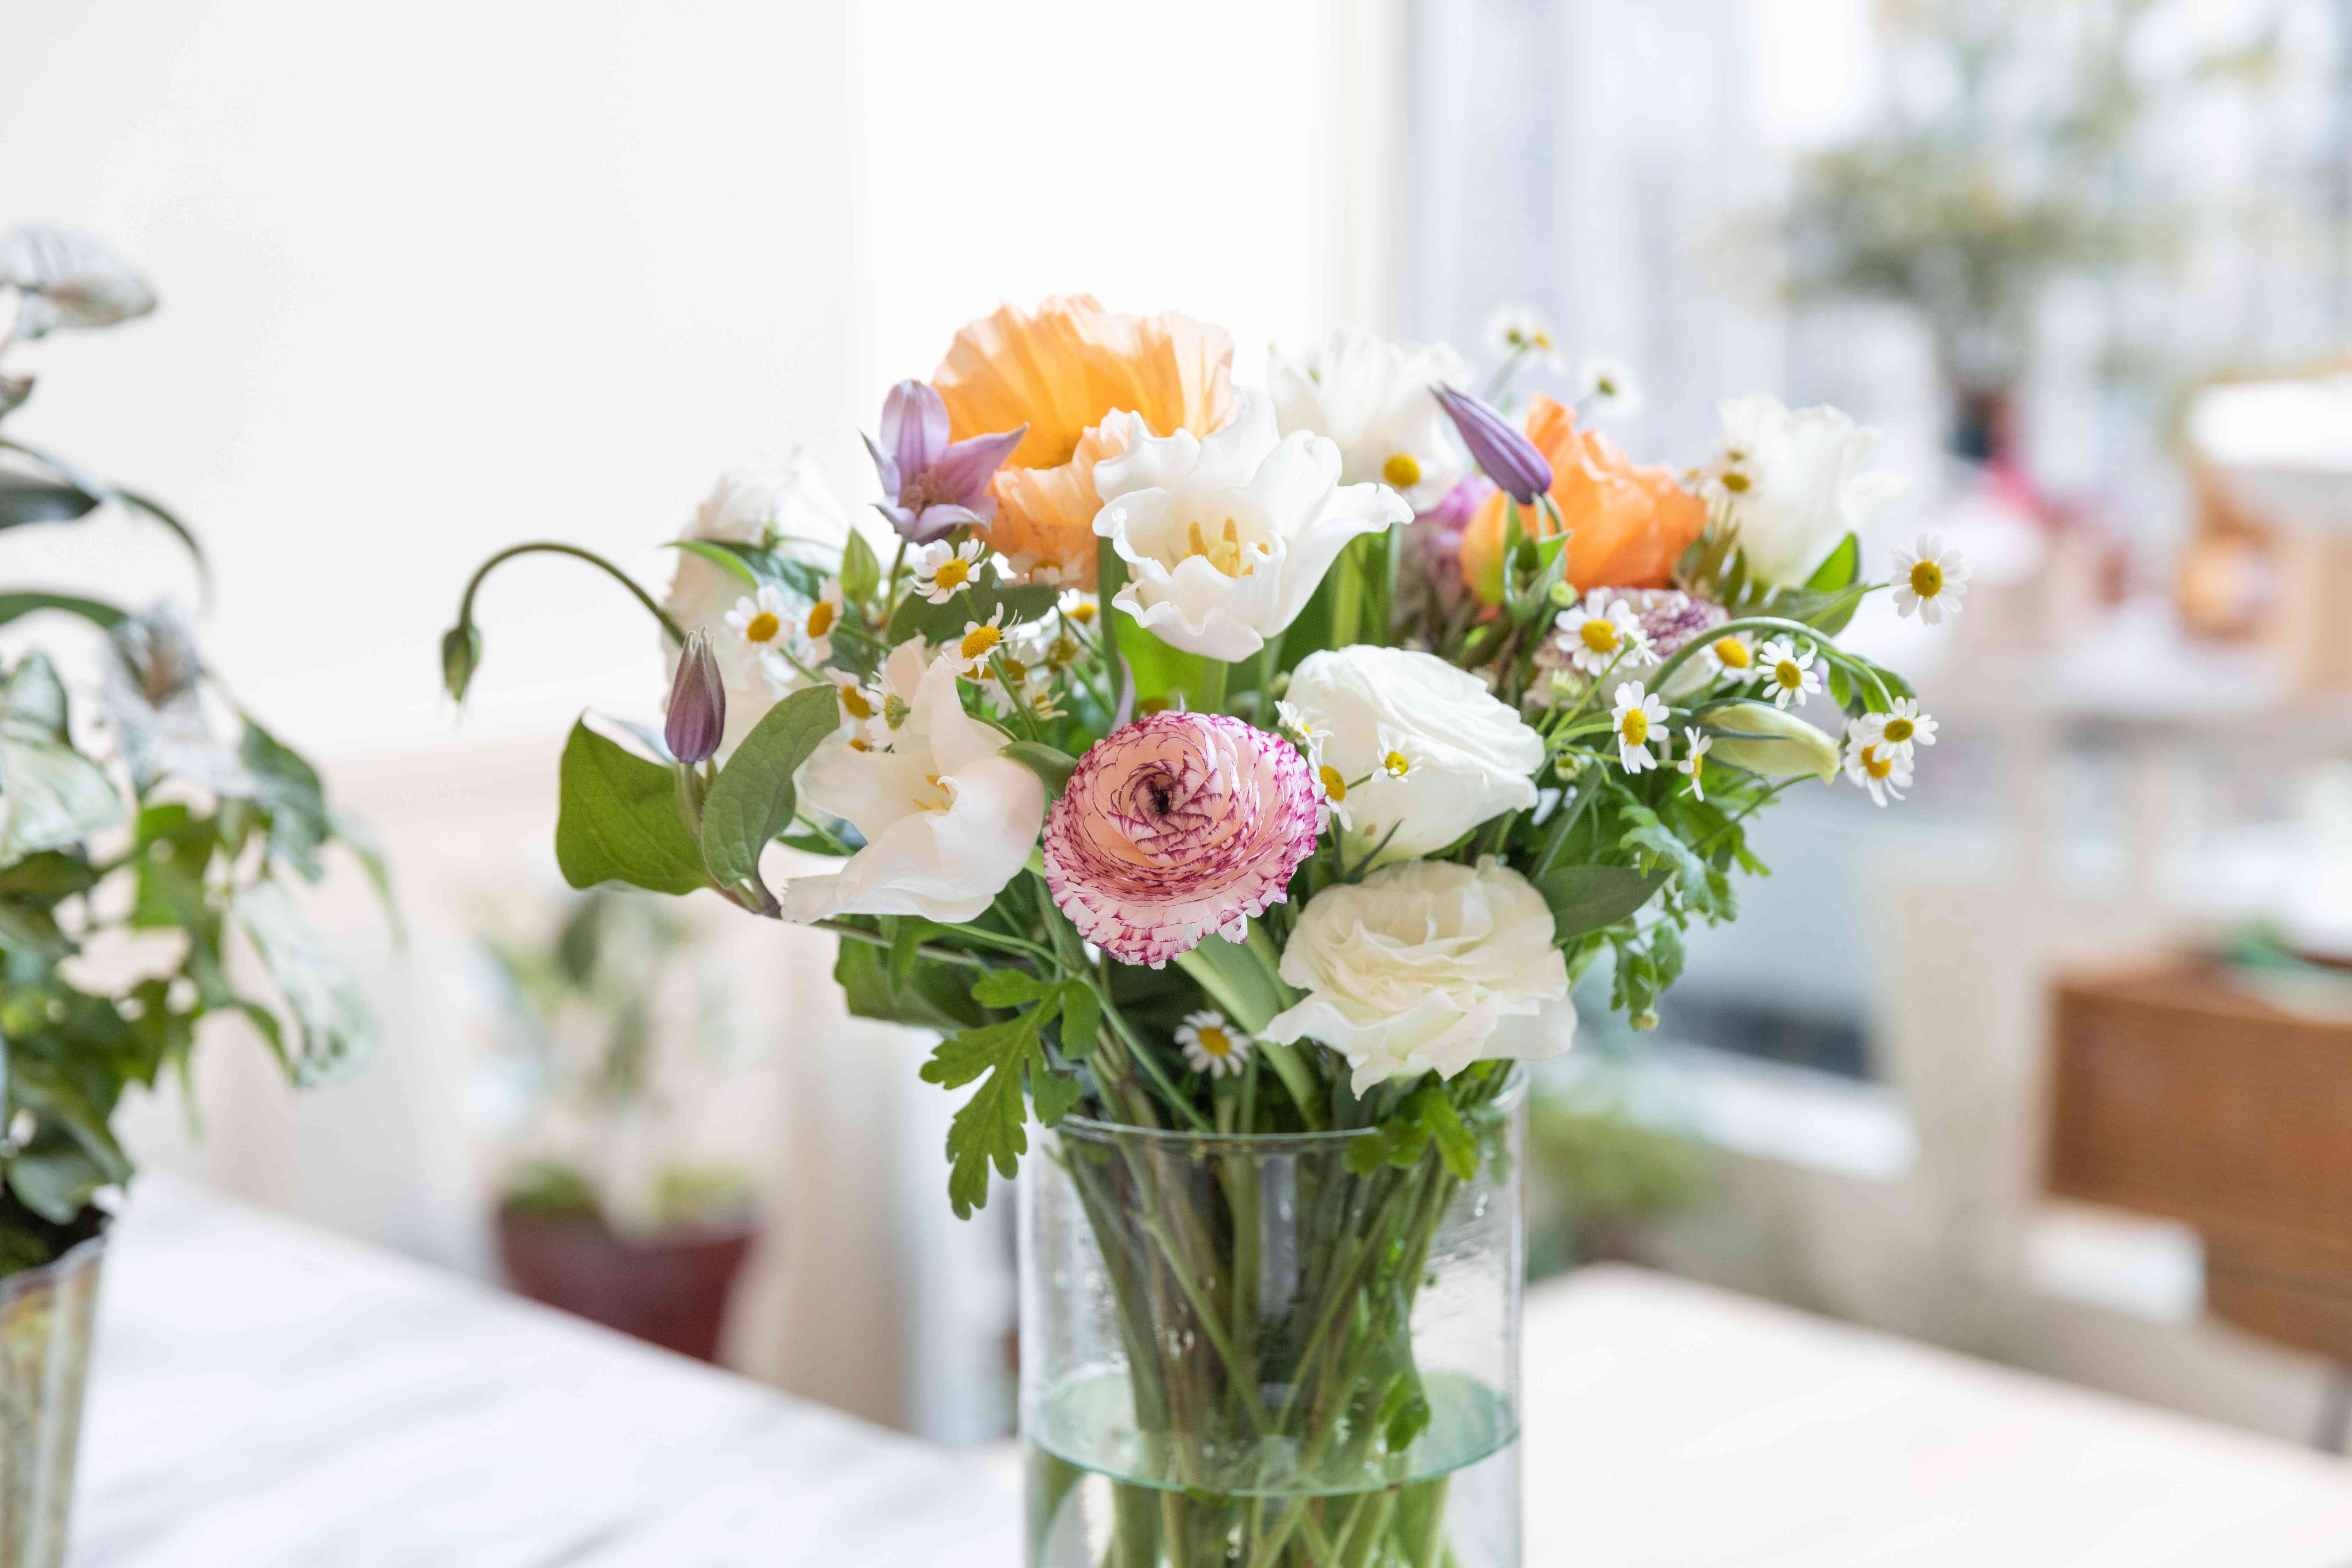 Bouquet of assorted flowers placed in vase of water